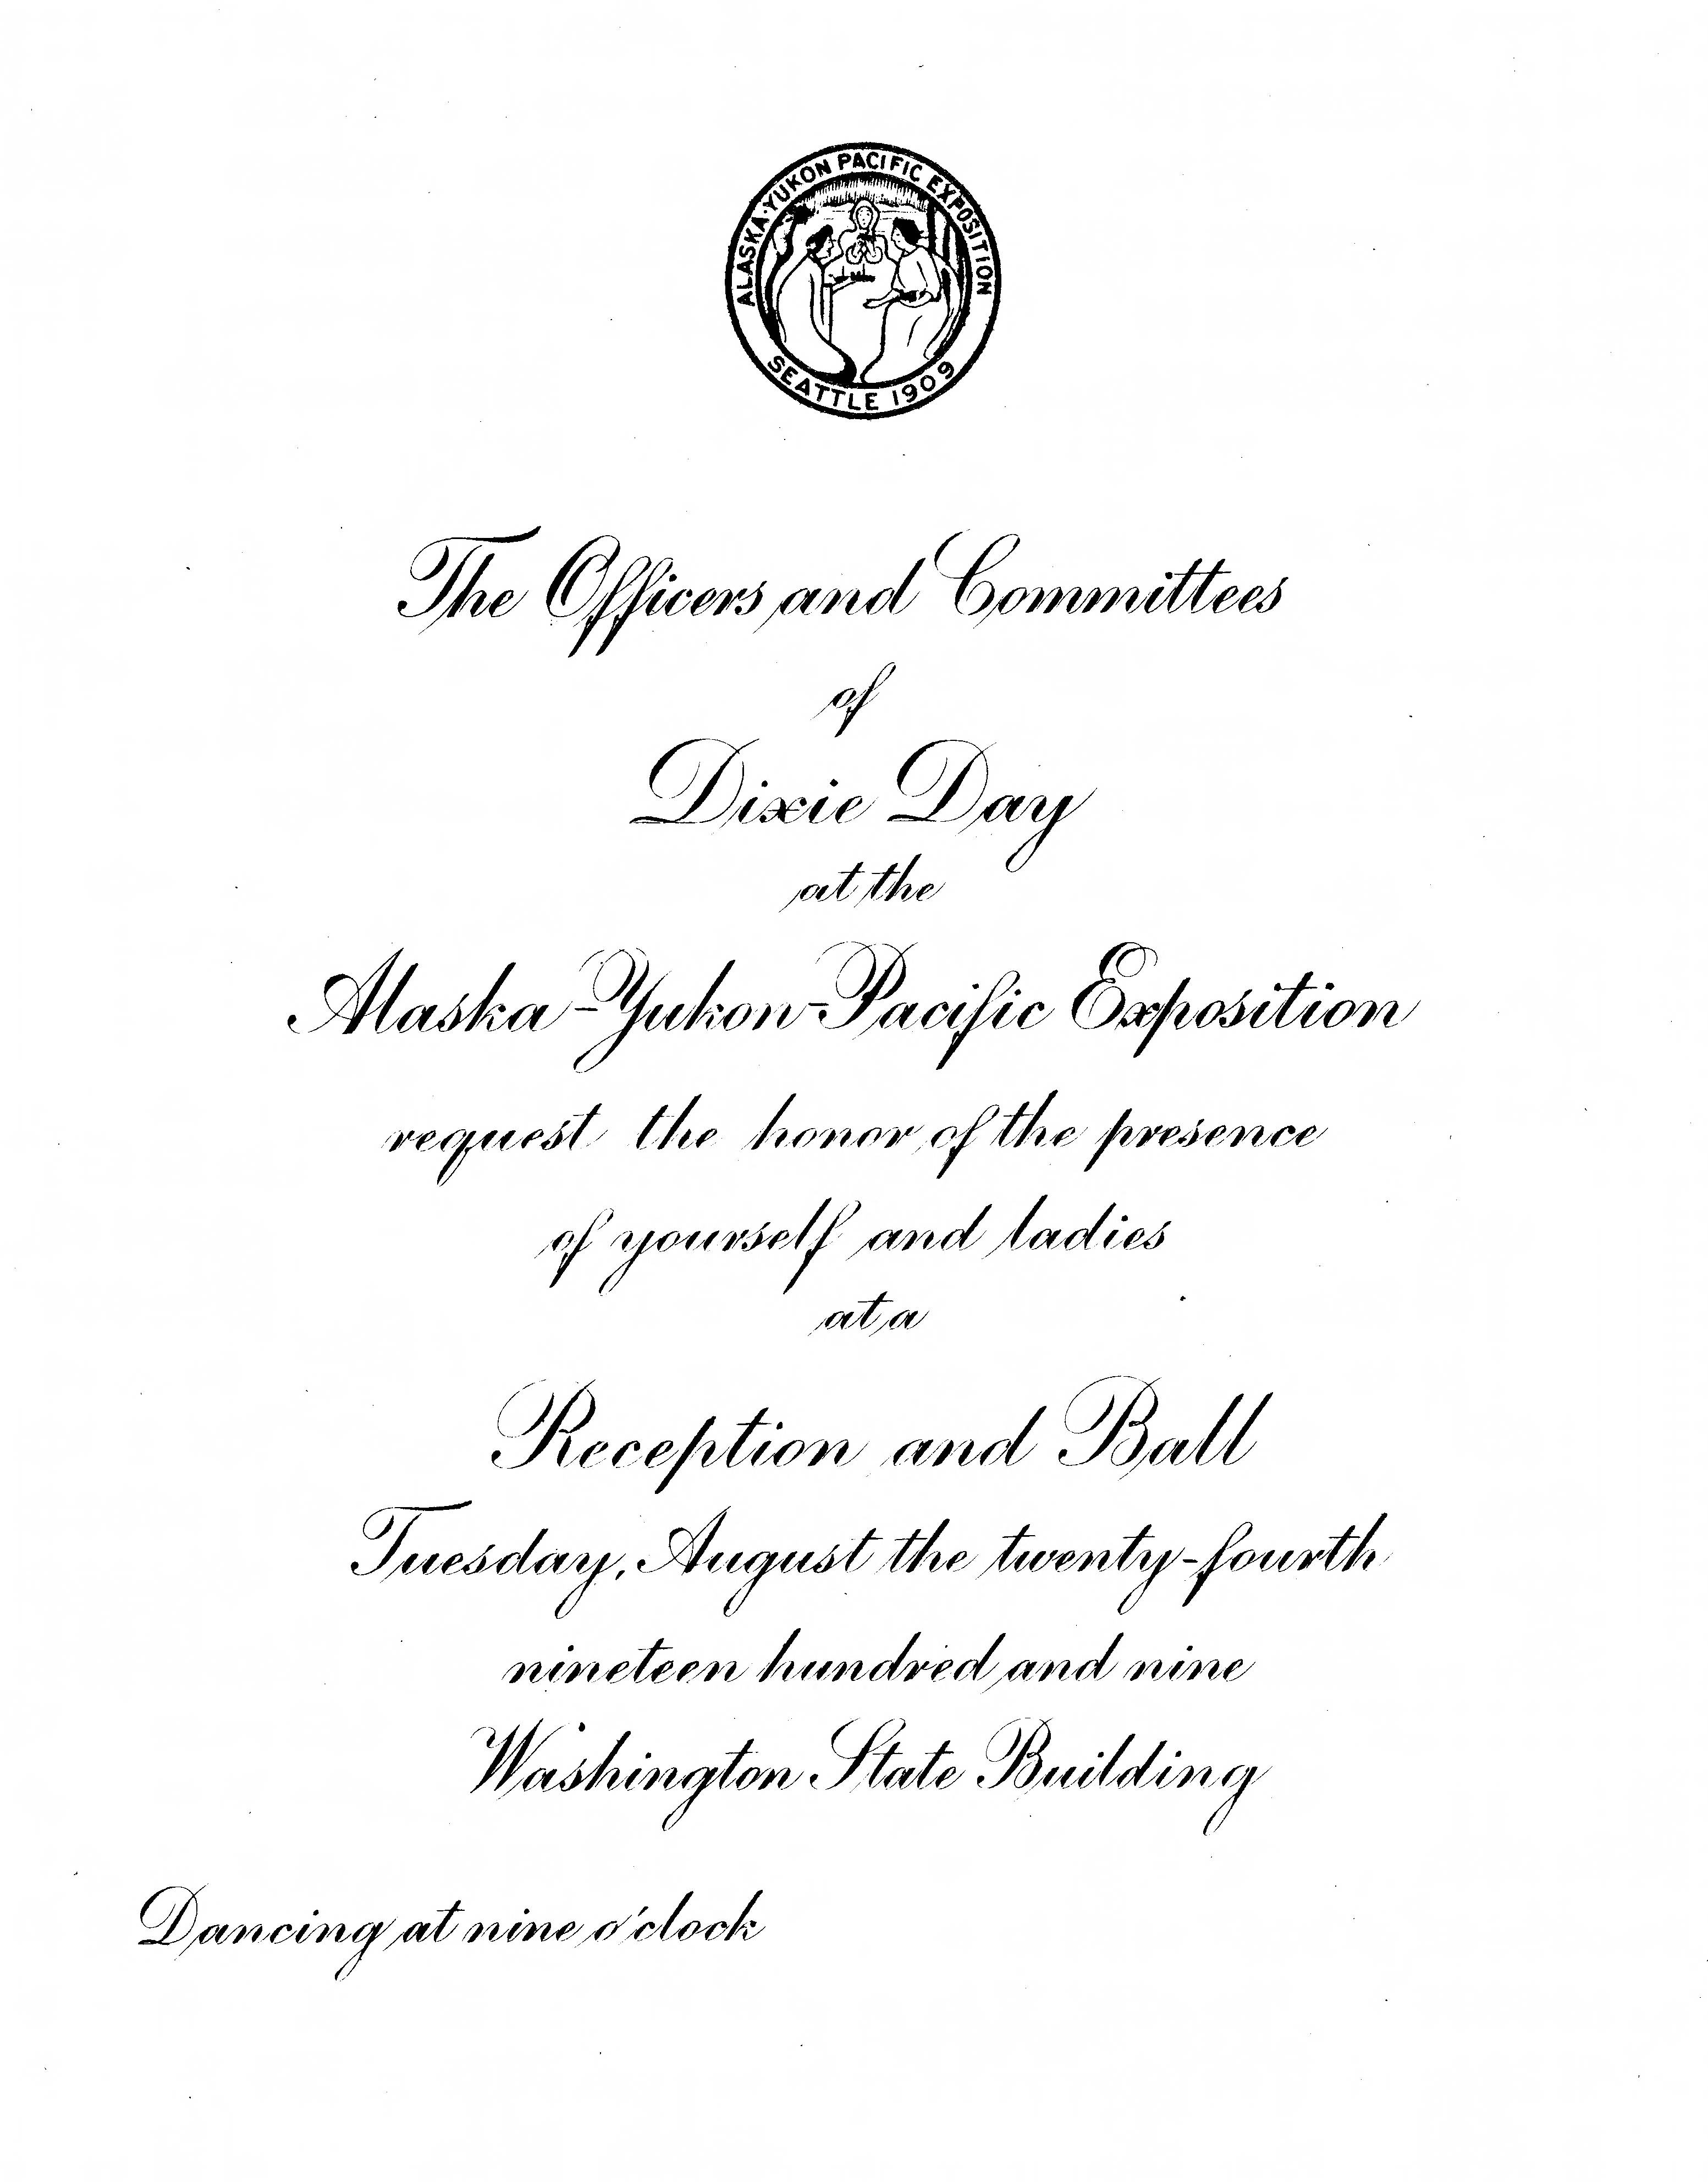 Invitation from Officers and Committees of Dixie Day to Dixie Day reception and ball in the Washington State building on 24 August 1909